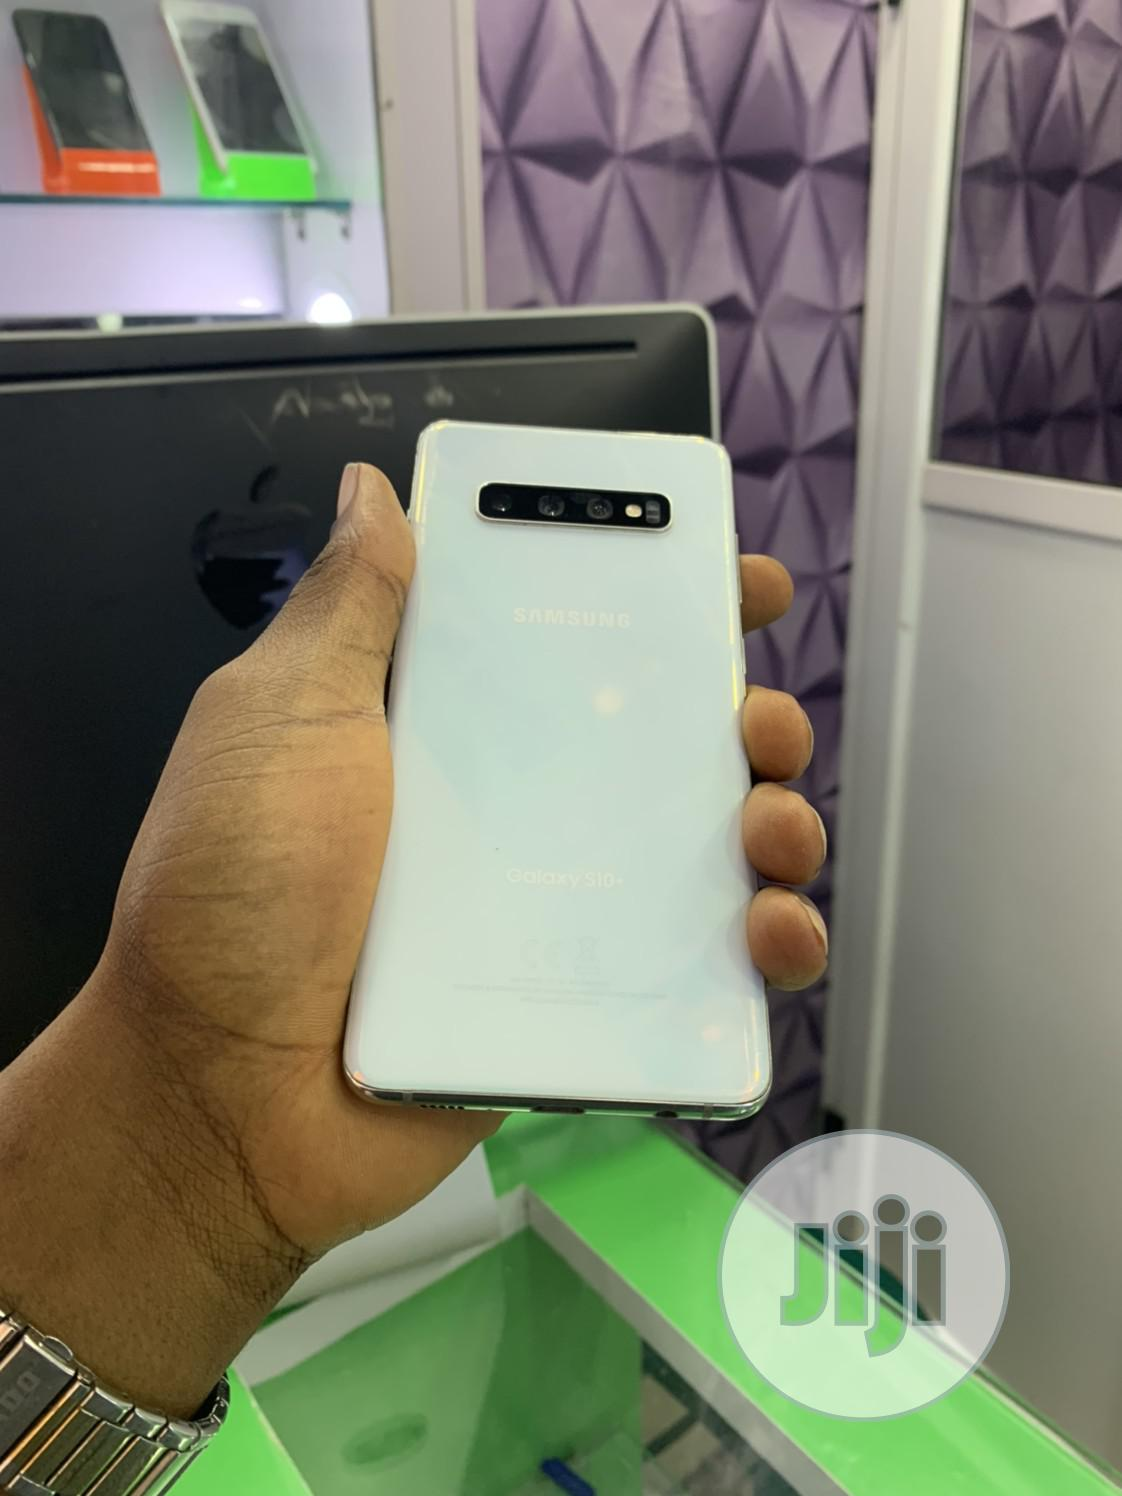 Samsung Galaxy S10 Plus 128 GB White